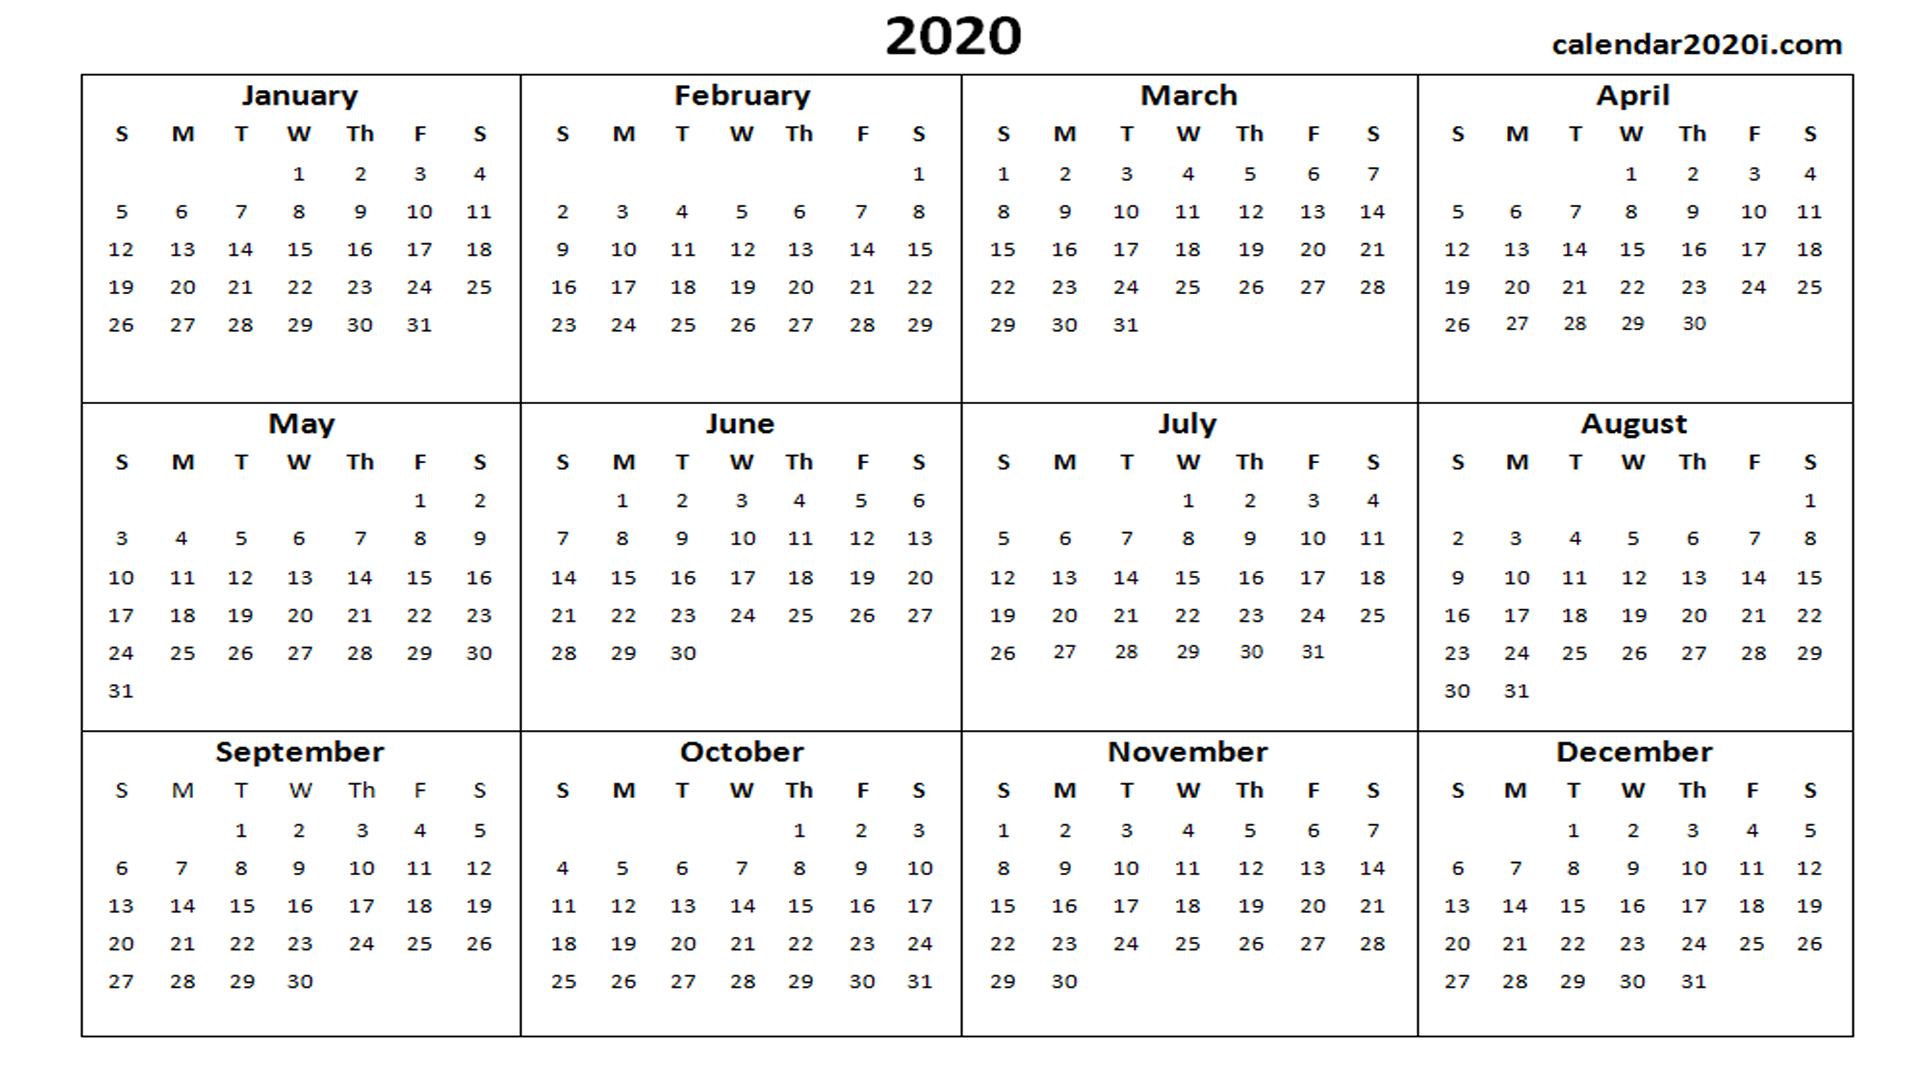 2020 Calendar Printable Template Holidays, Word, Excel, Pdf throughout Printable Calander 2020